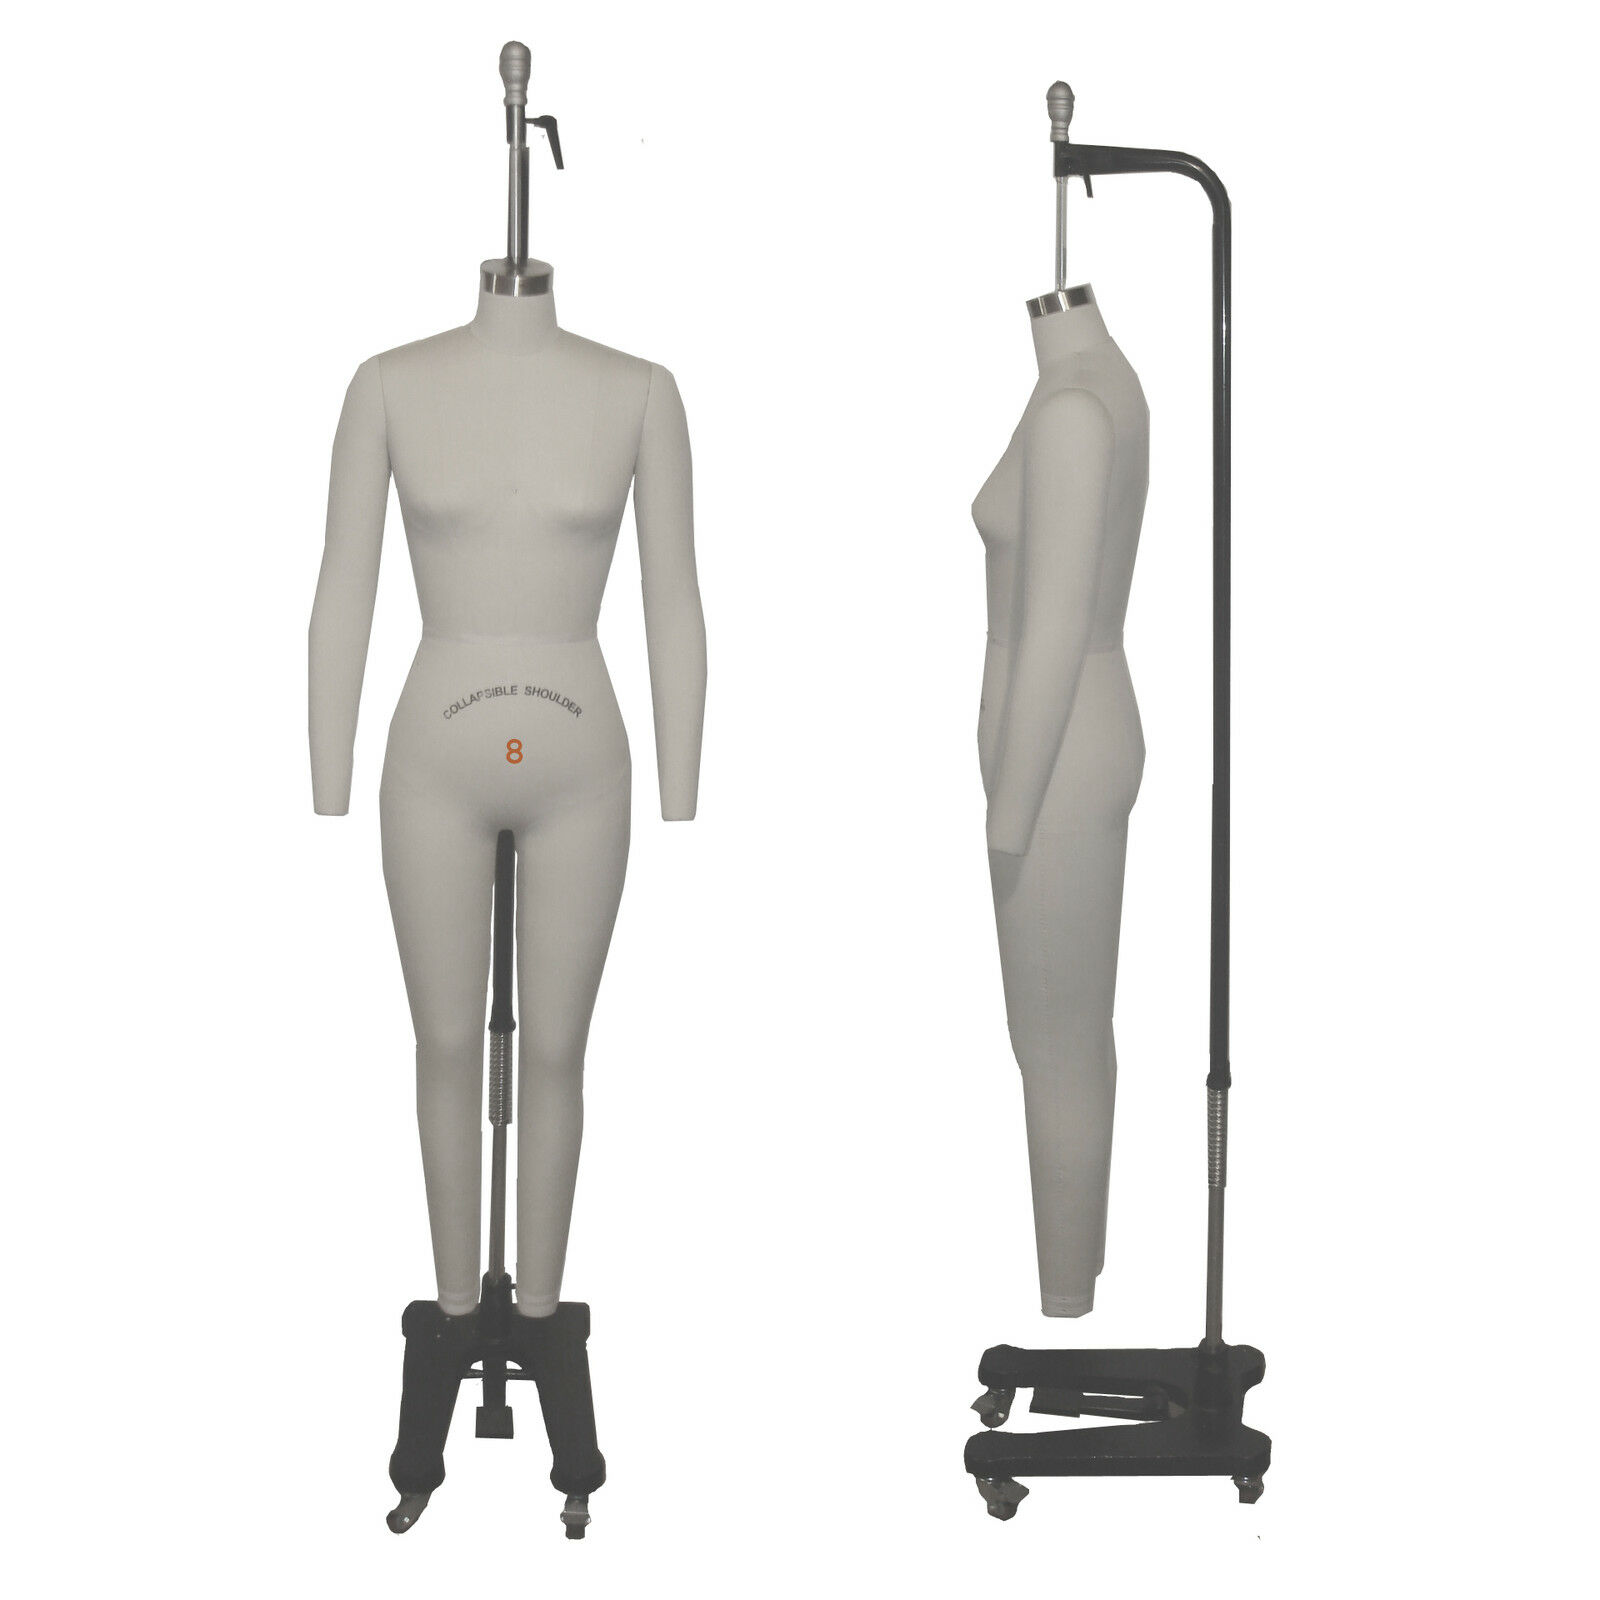 Full Body Professional Dress Forms Sewing Form Size 8